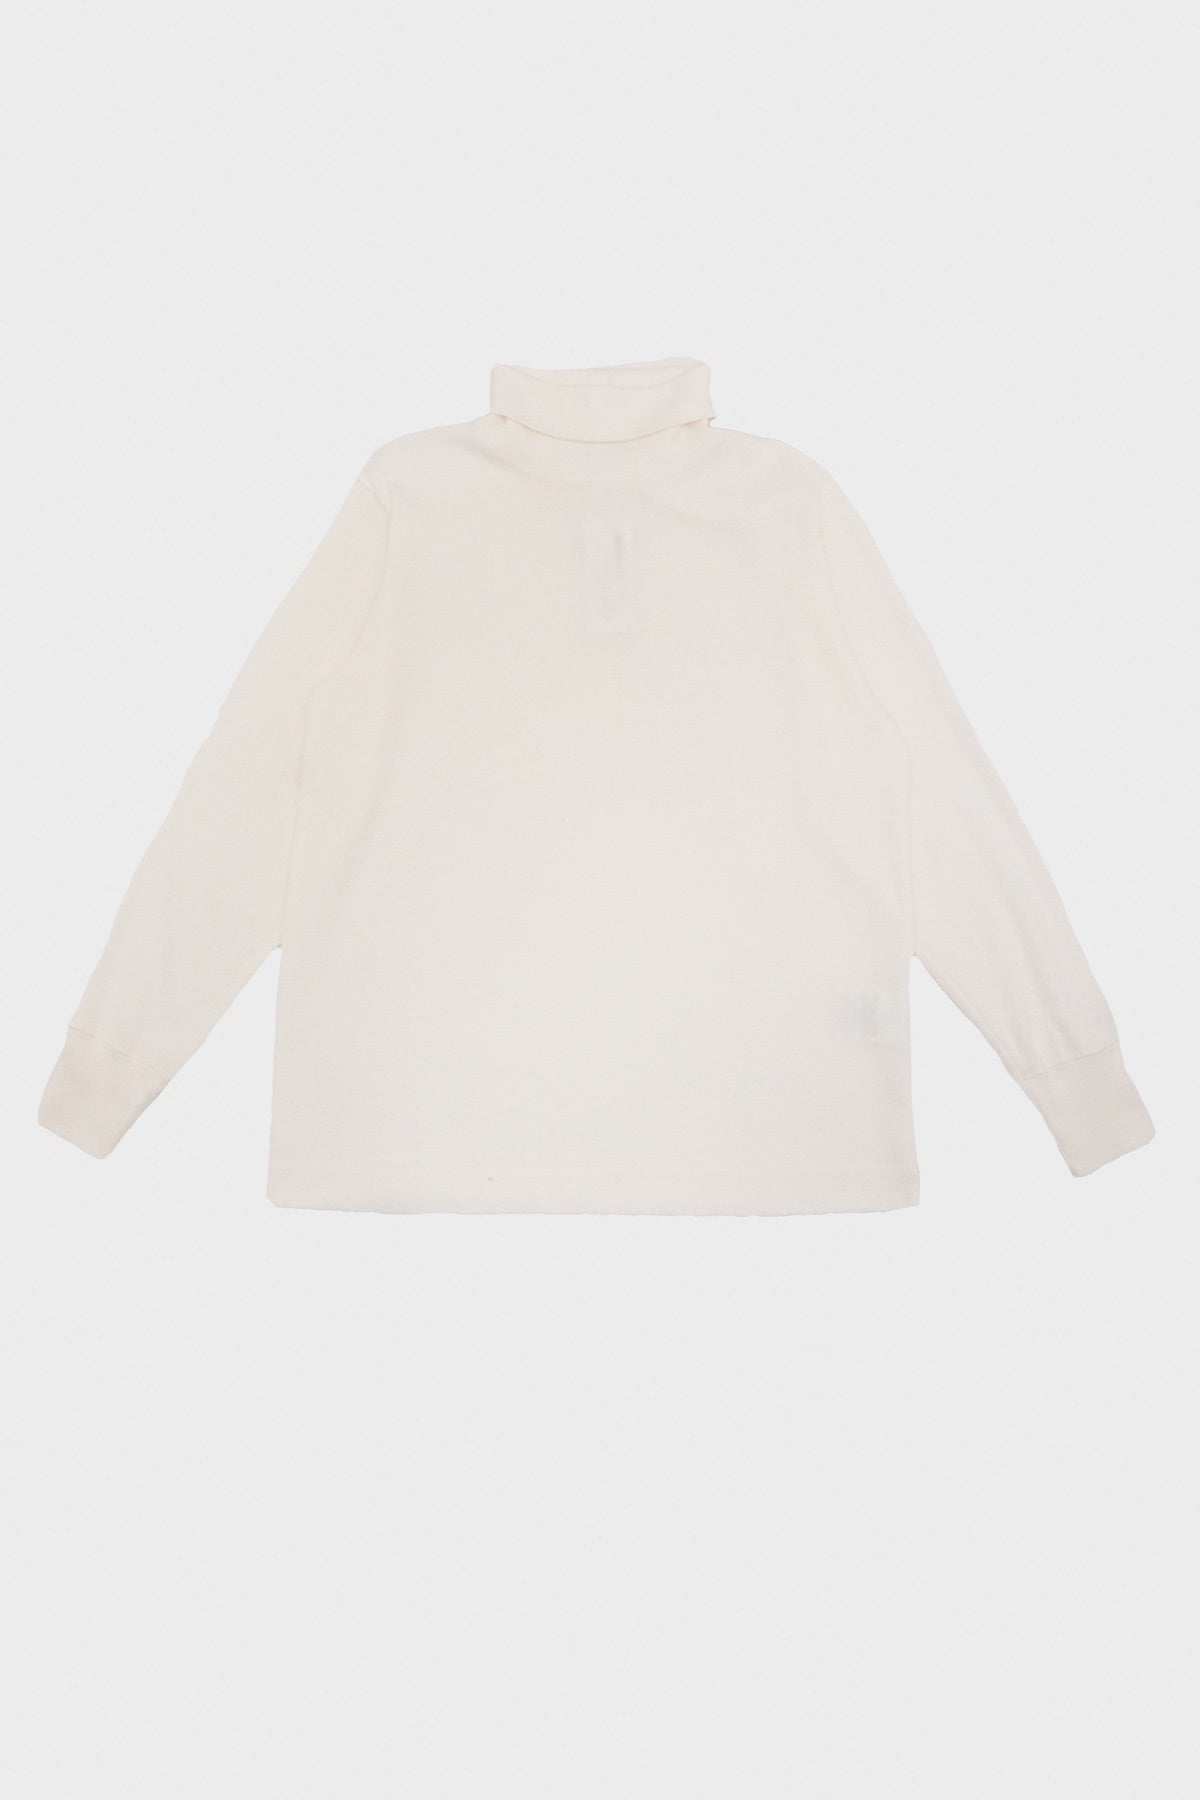 nanamica - Turtle Neck Long Sleeve Tee - Off White - Canoe Club